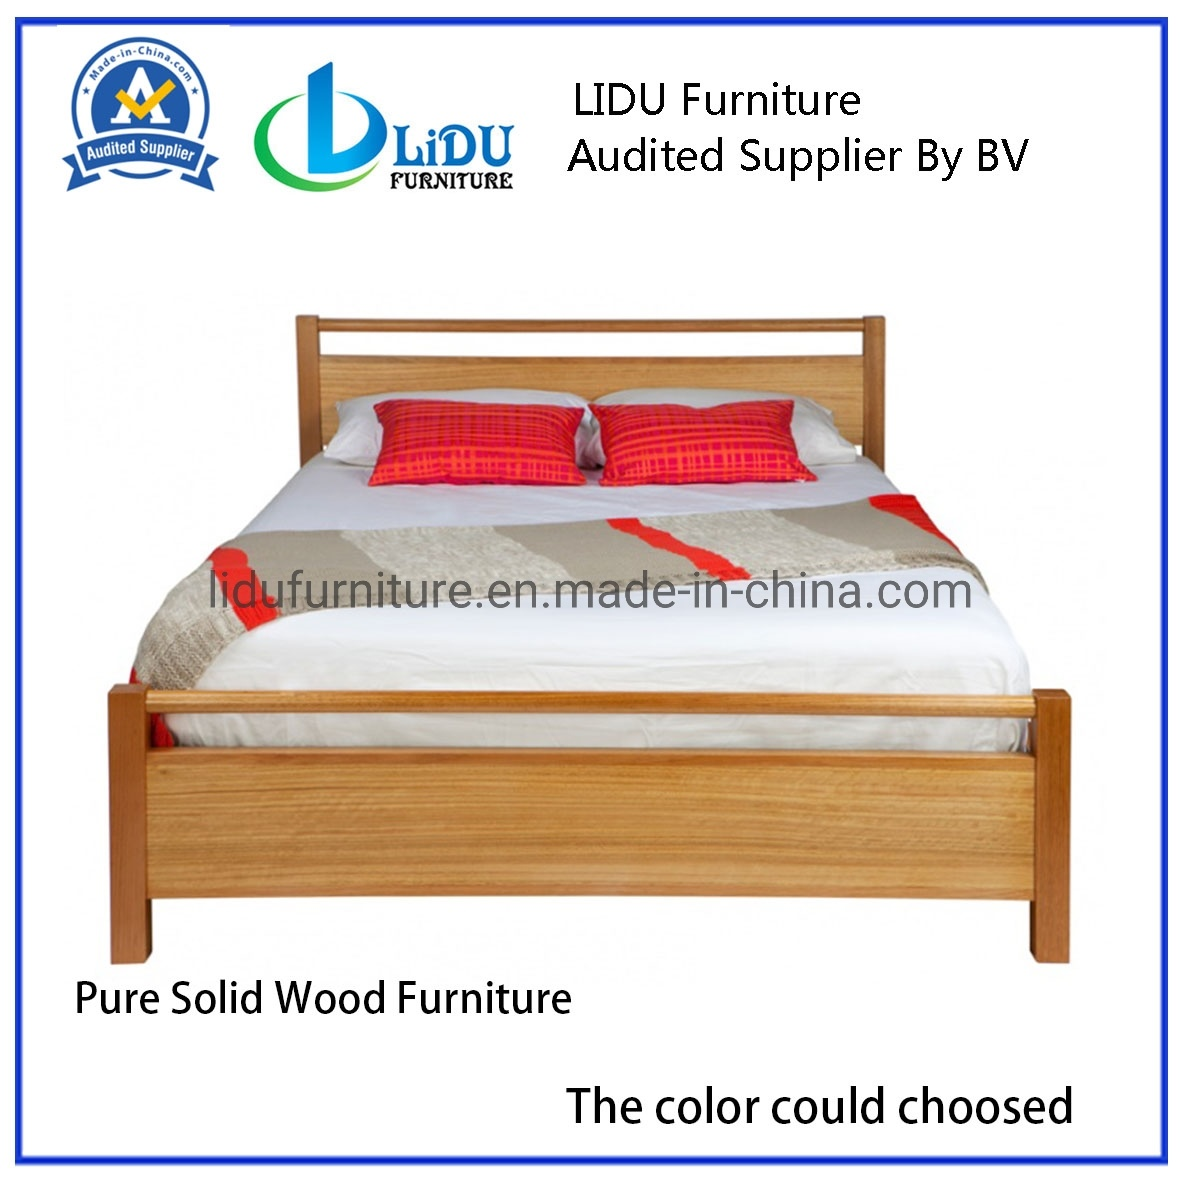 Picture of: China Solid Wood Bed Pine Bedroom Furniture Modern Bed Solid Wooden Bed From China Pine Wood Kids Bunk Beds For Sale Photos Pictures Made In China Com